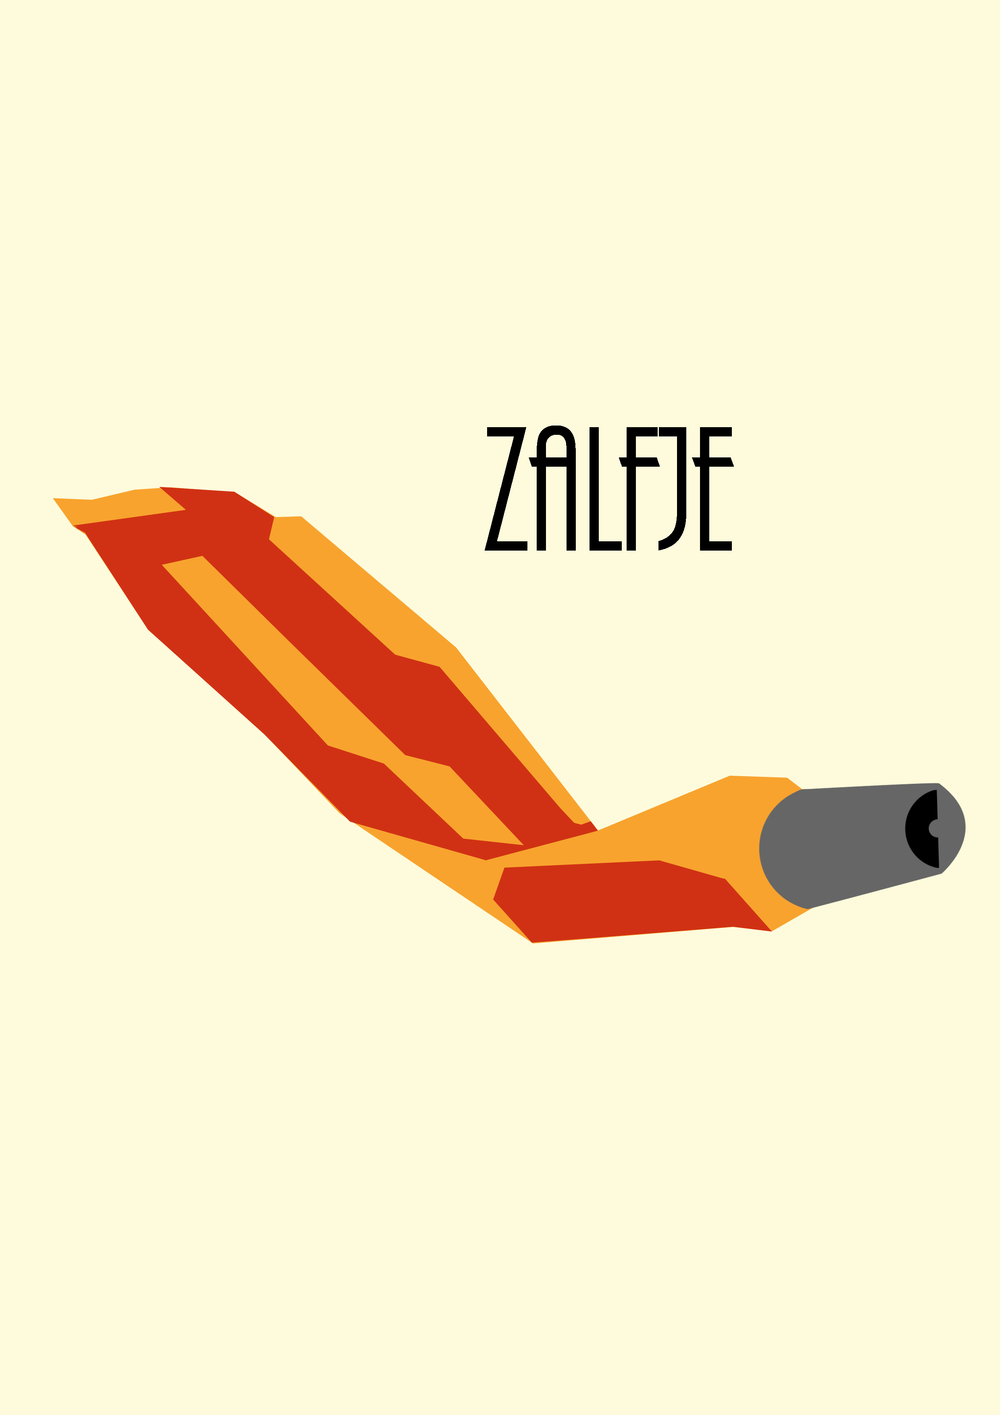 zalfje2.png